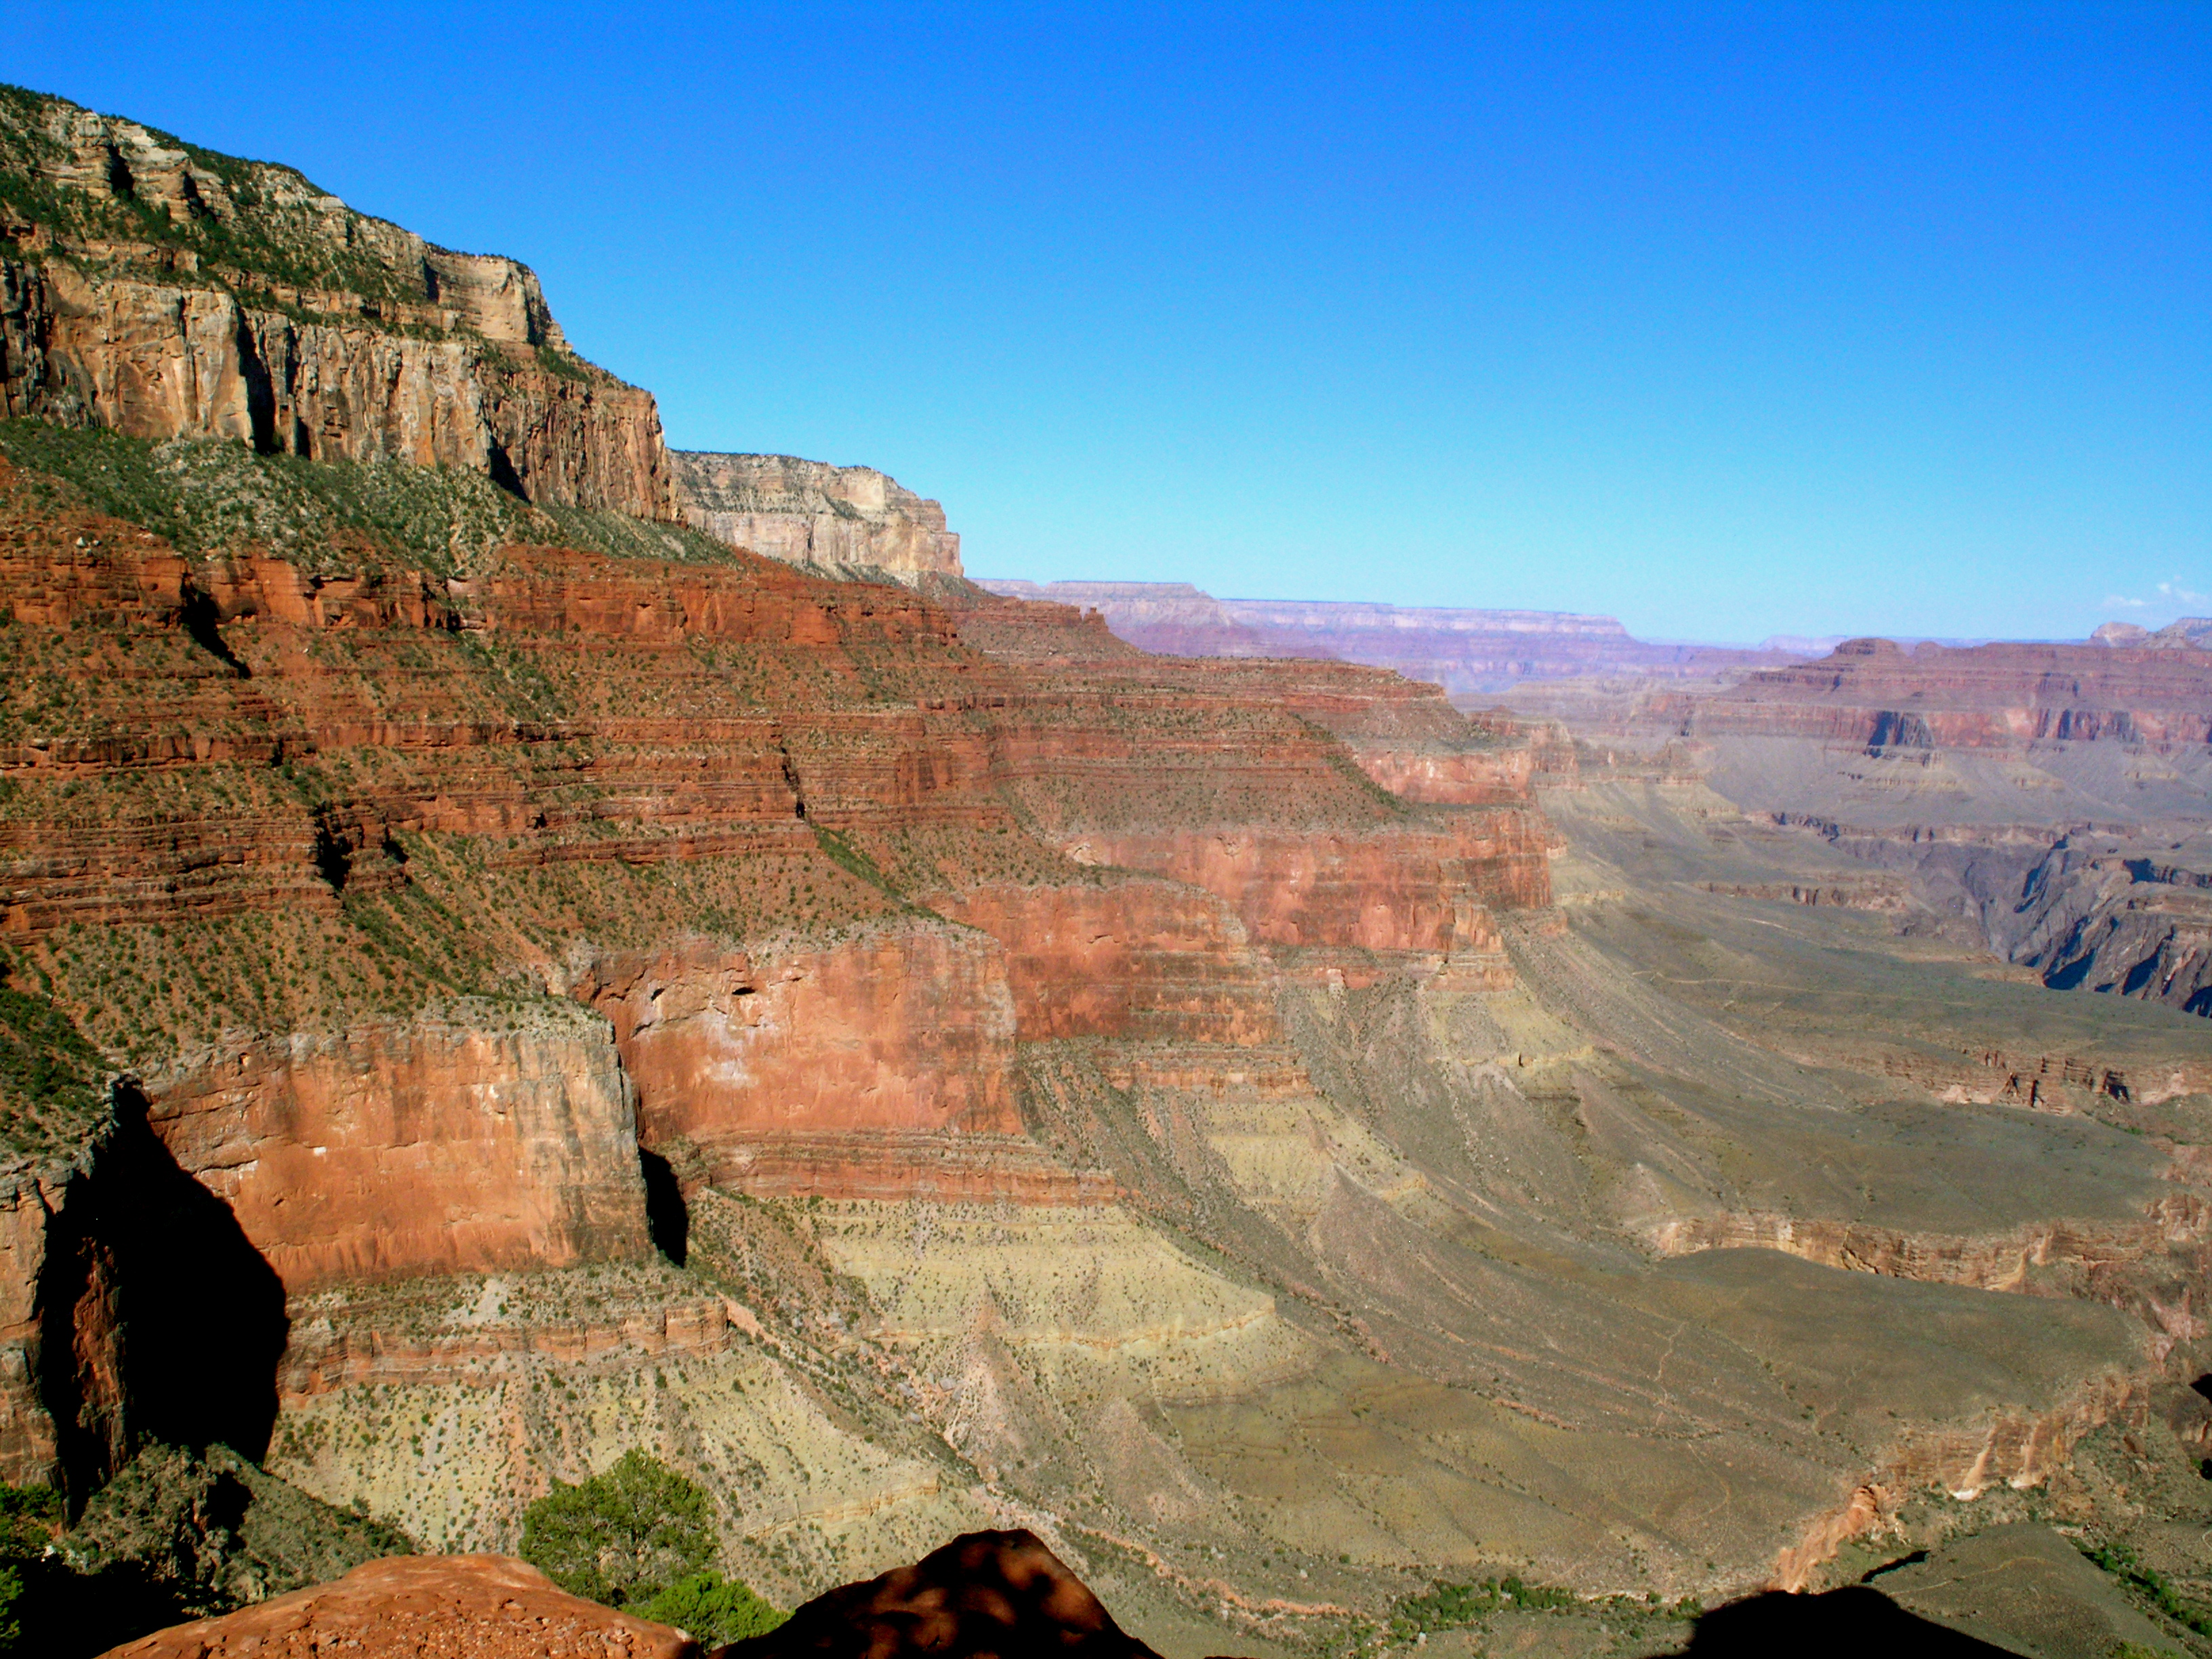 Examples of clastic and carbonate sedimentary rock layers at the Grand Canyon National Park photo taken from South Kaibab Trail.